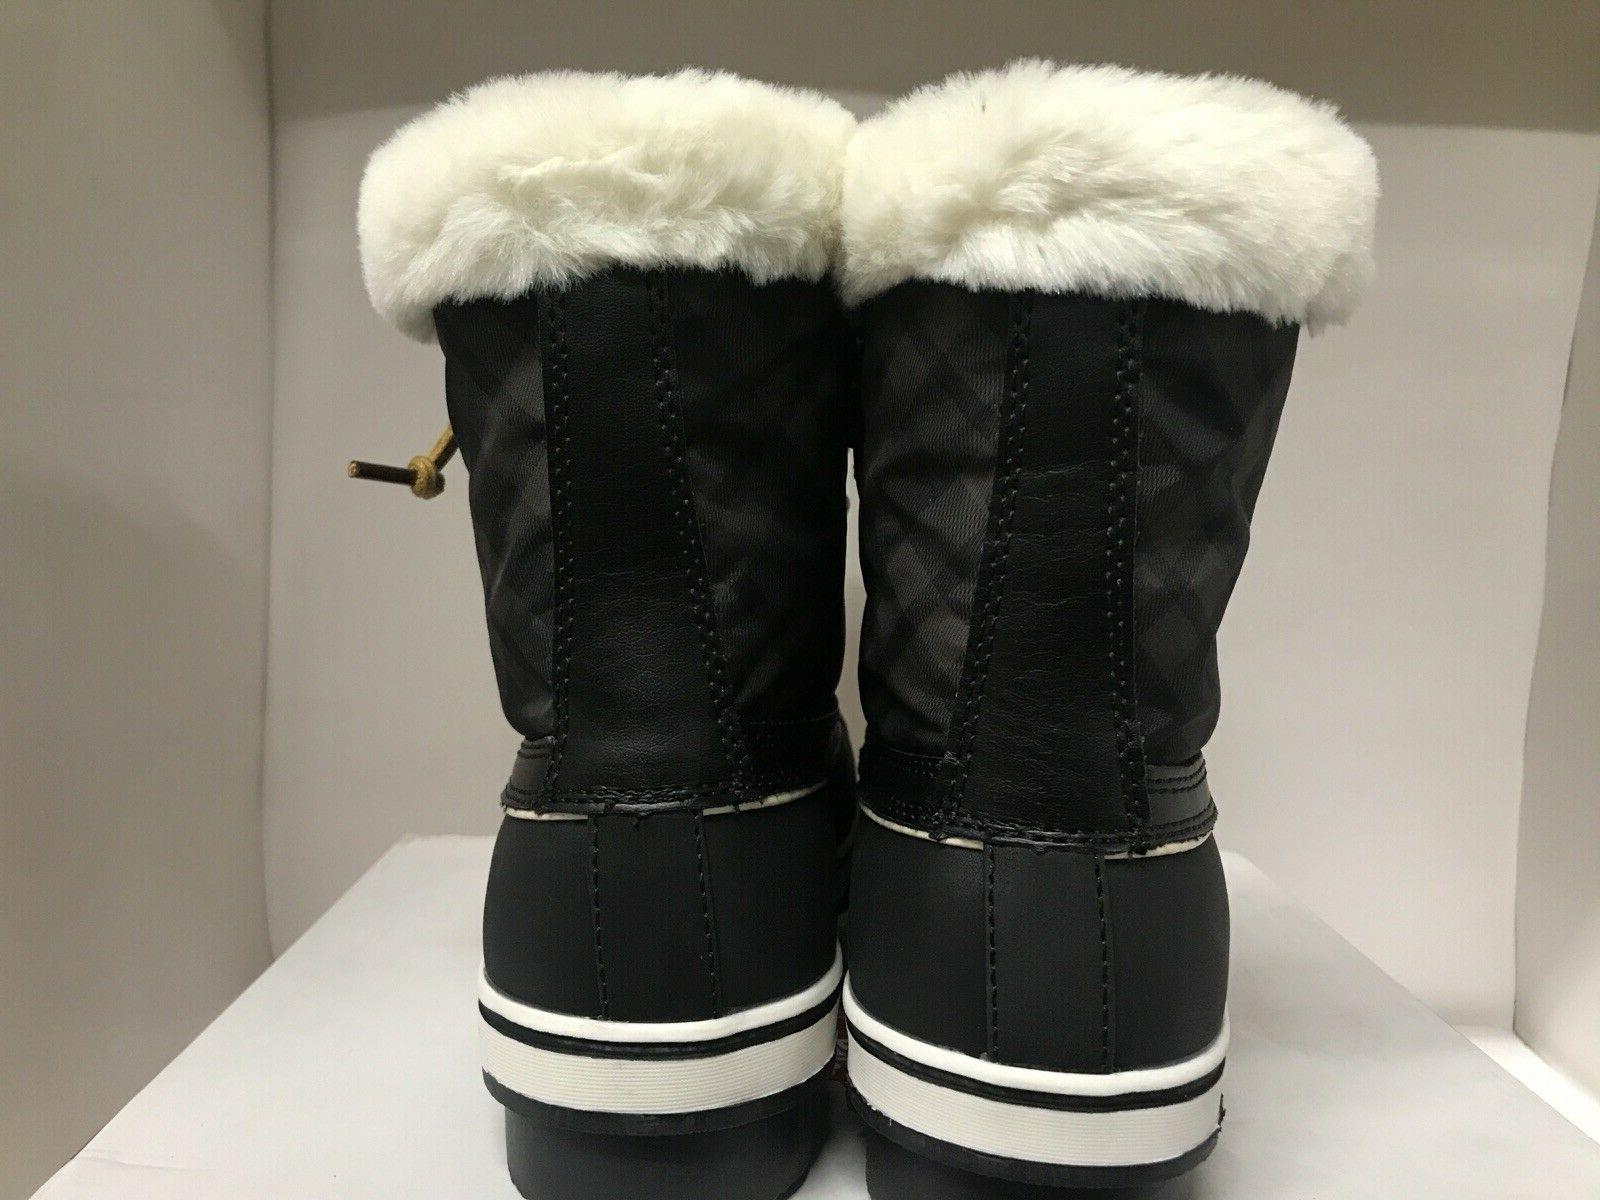 Globalwin Fur Lined Snow Boots Size 10